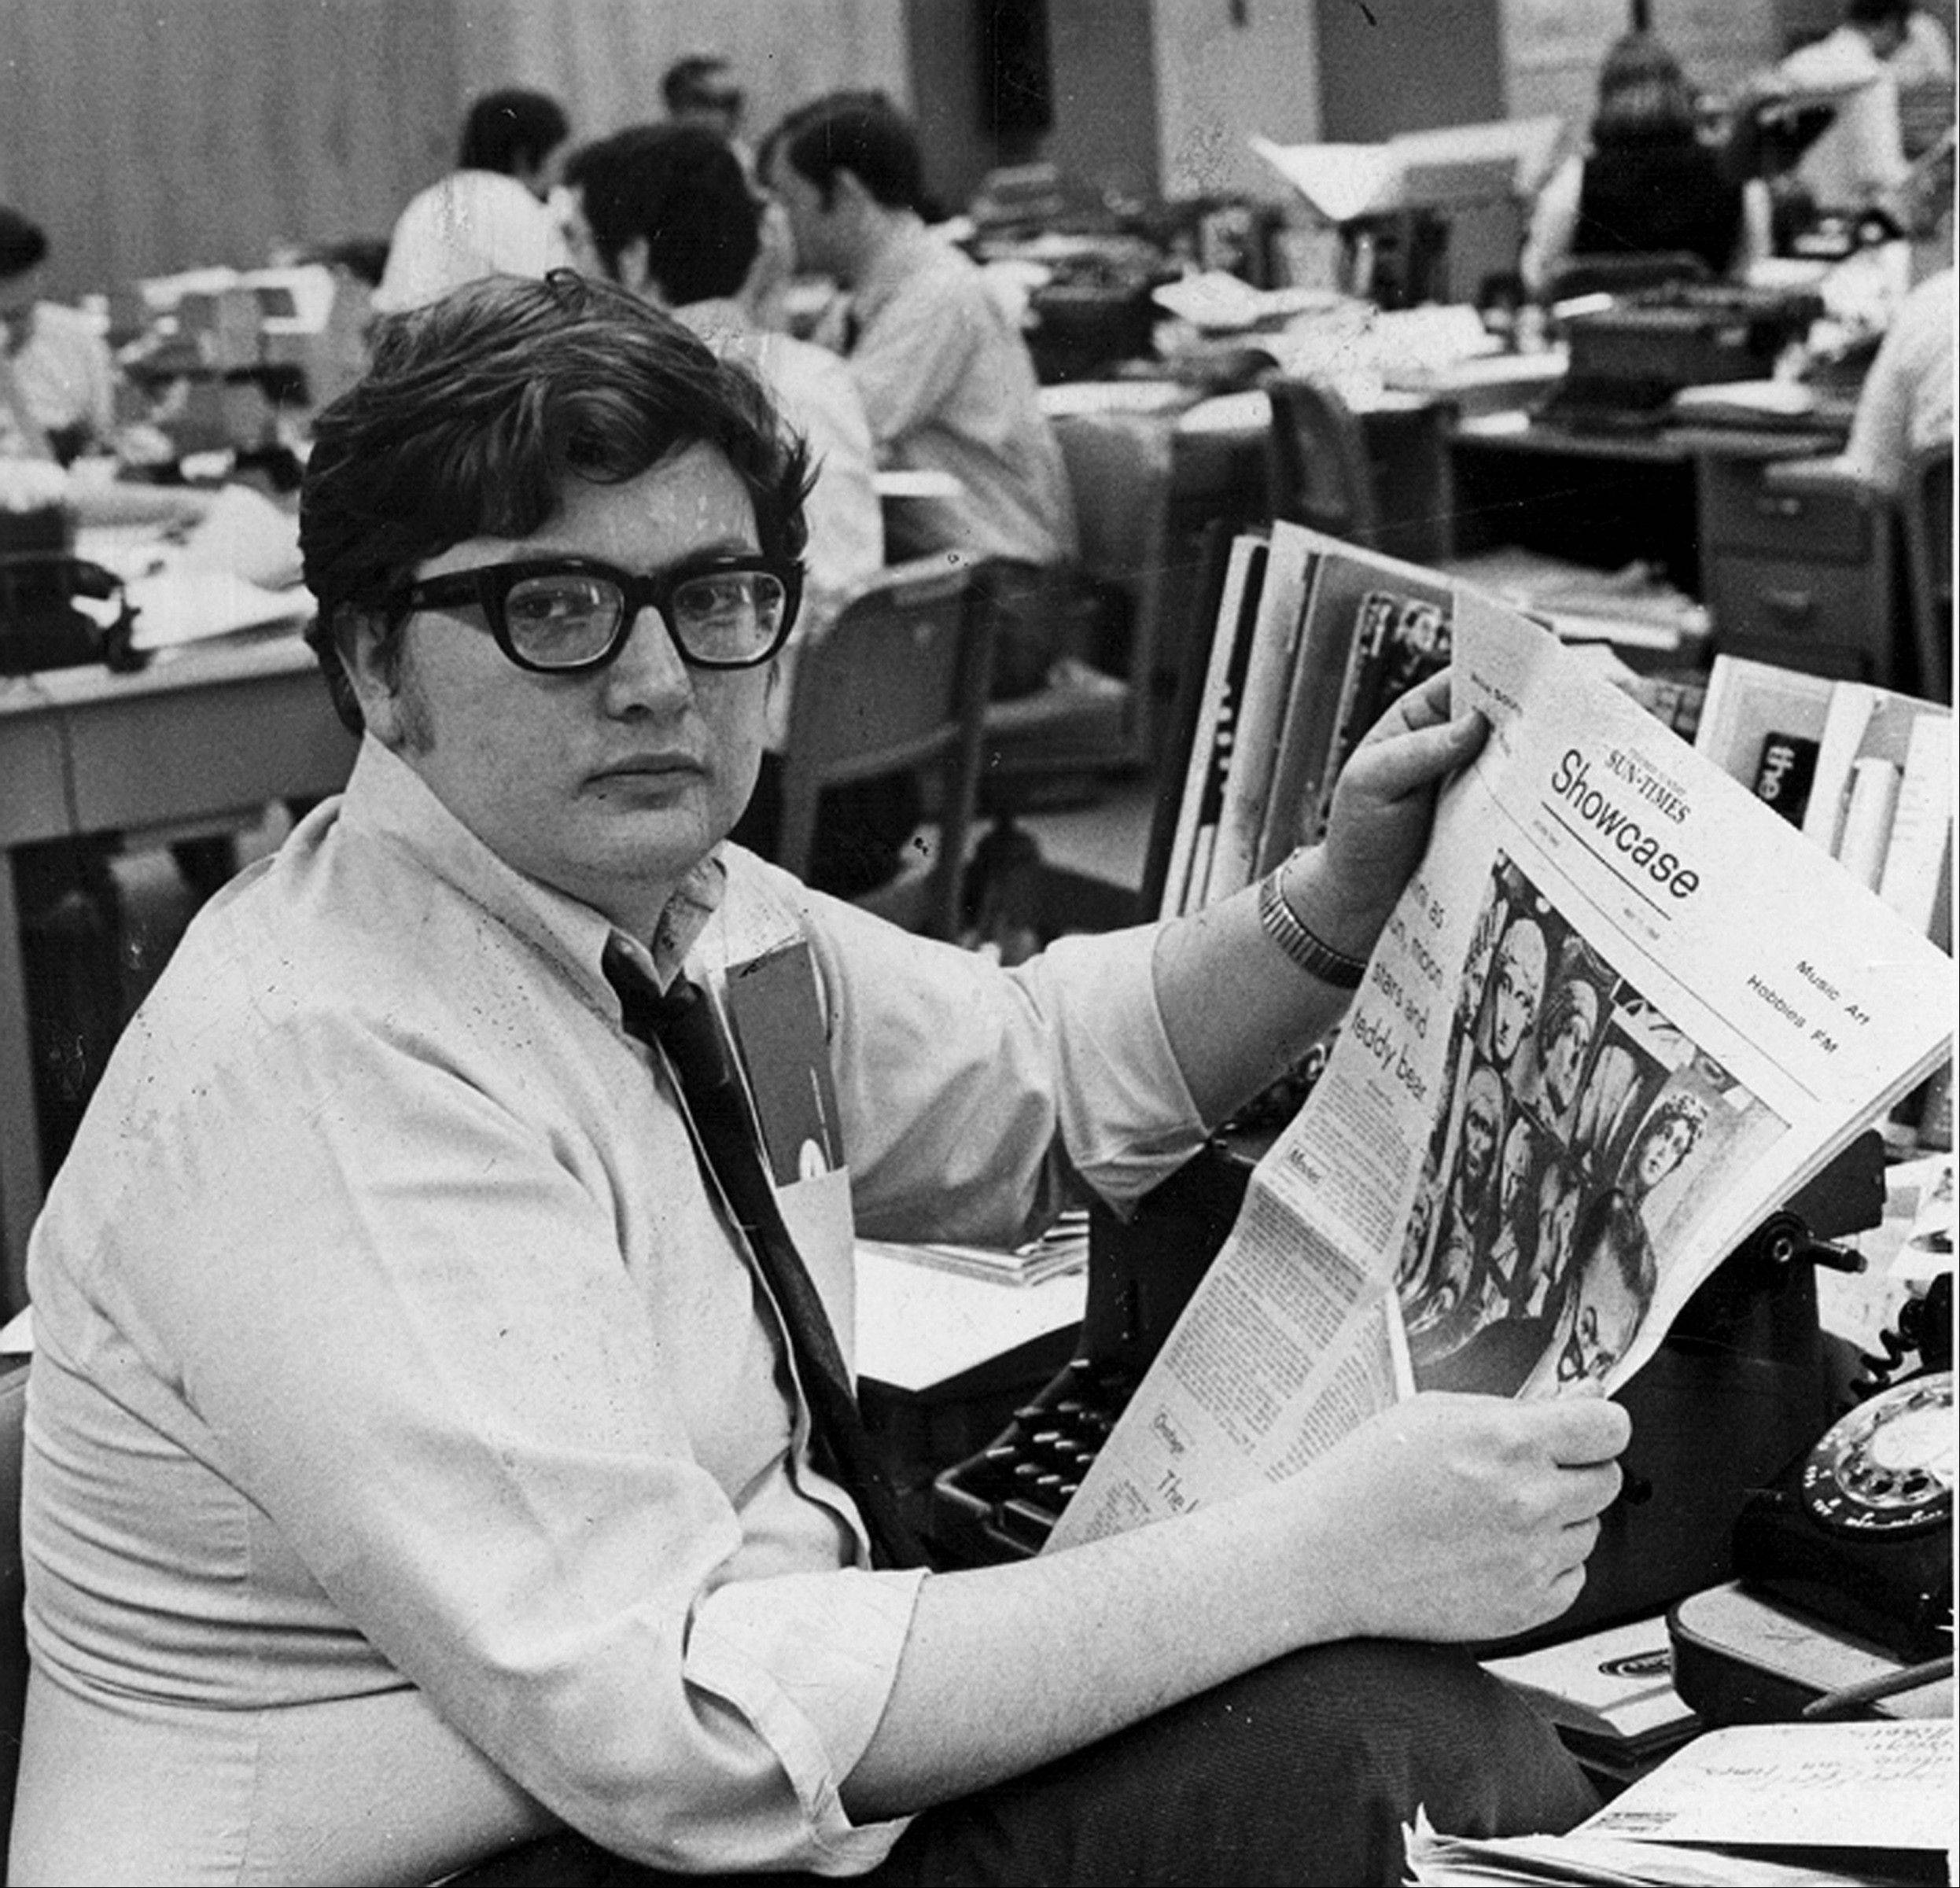 Movie critic Roger Ebert in the newsroom of the Chicago Sun-Times.